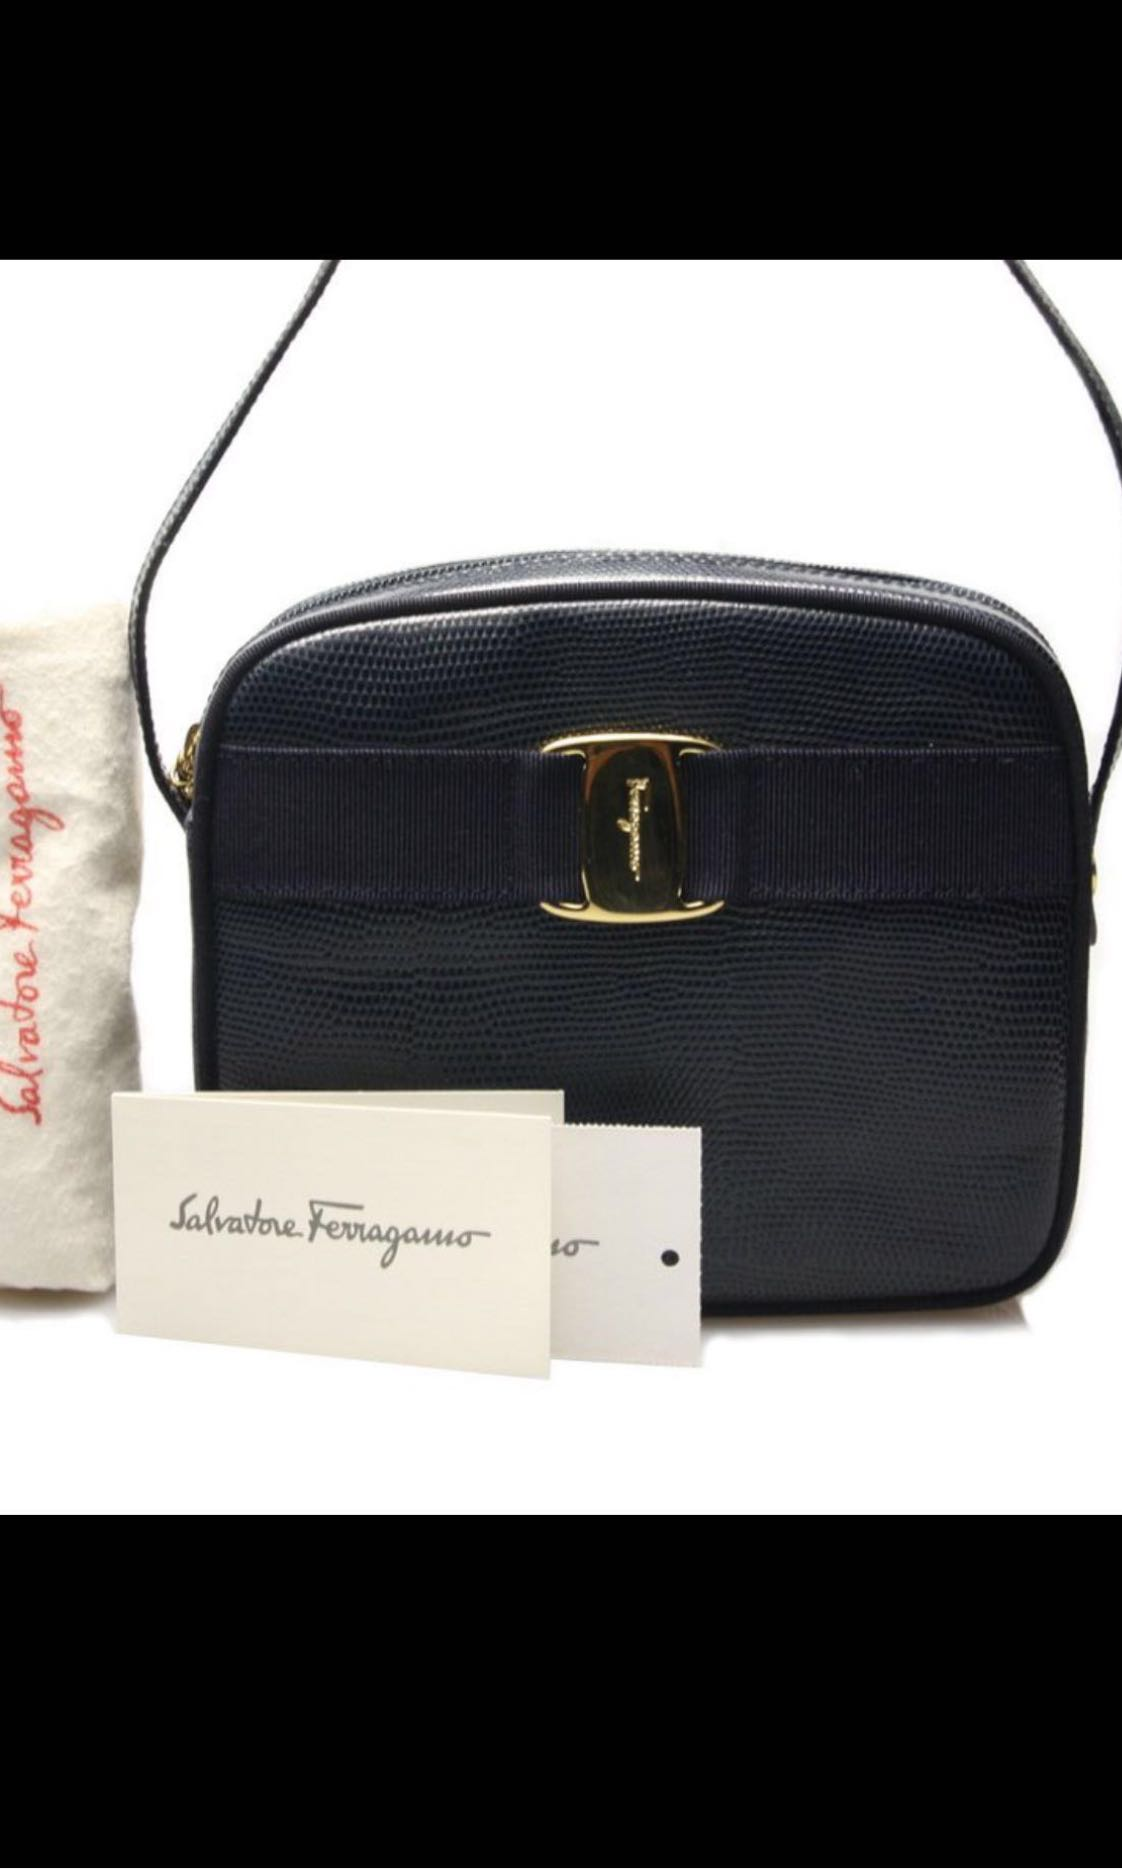 4de6bc9bd Vintage Ferragamo Vara Sling Crossbody Shoulder bag in Black ...